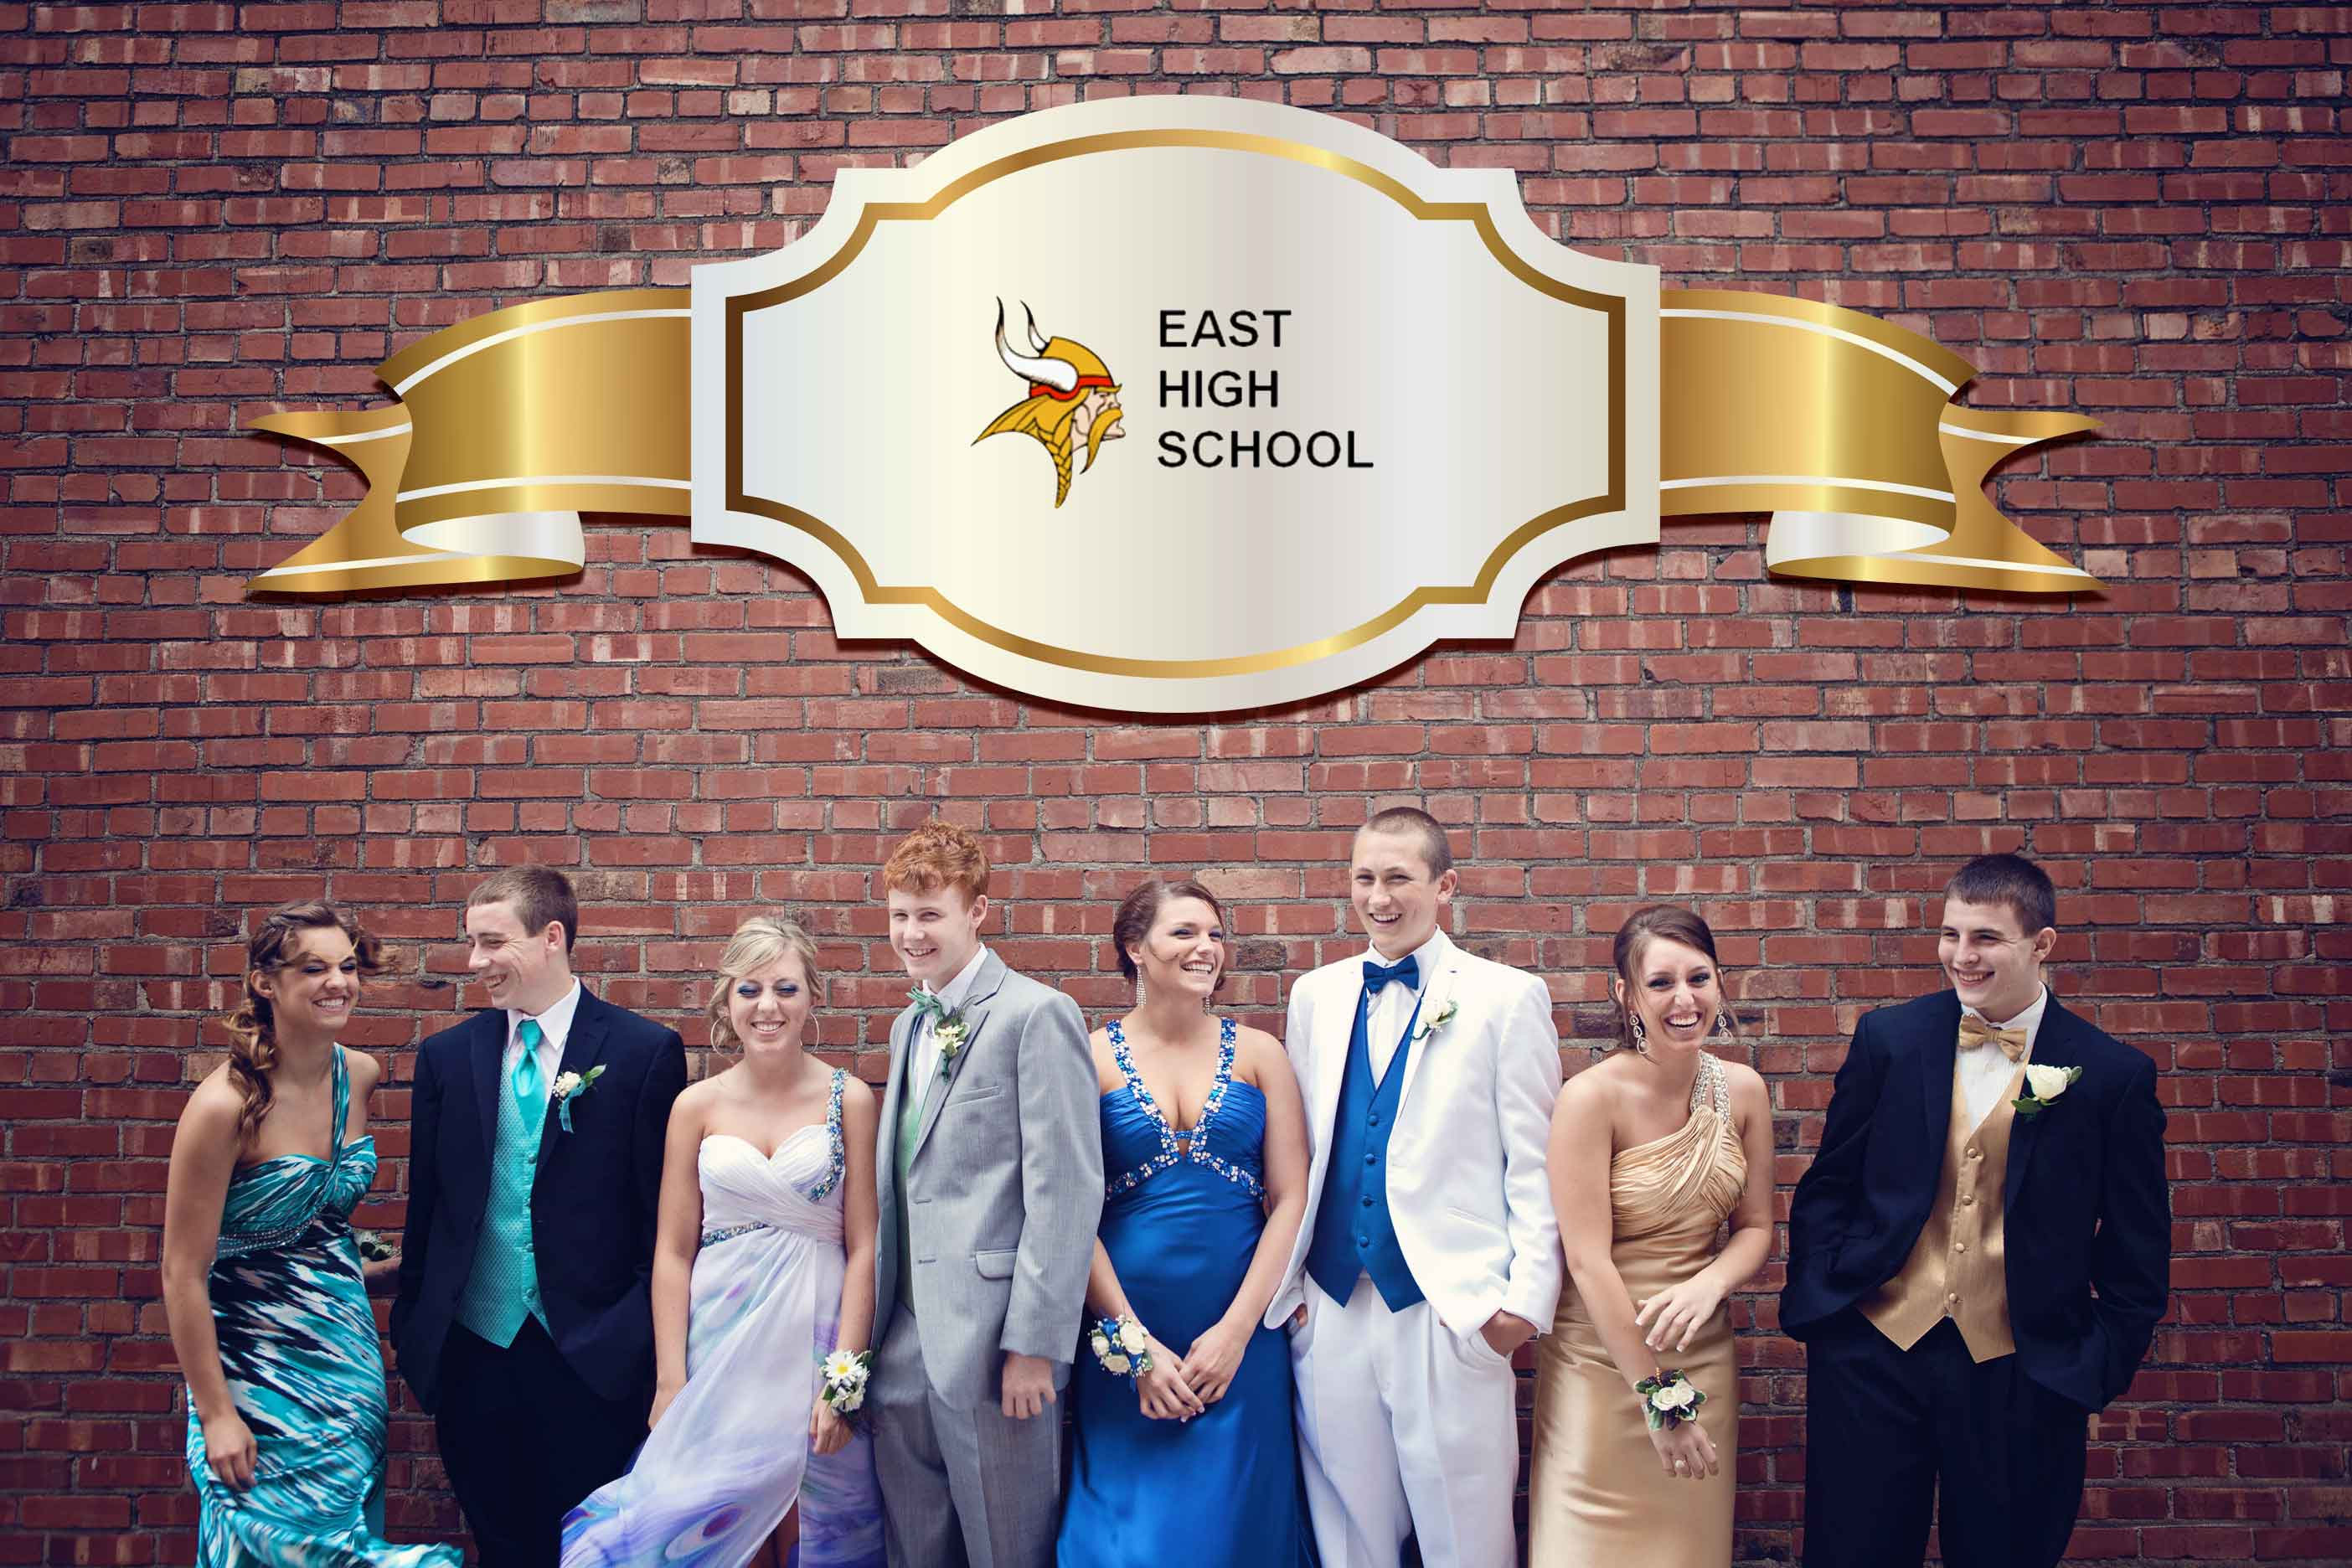 west chester east high school prom